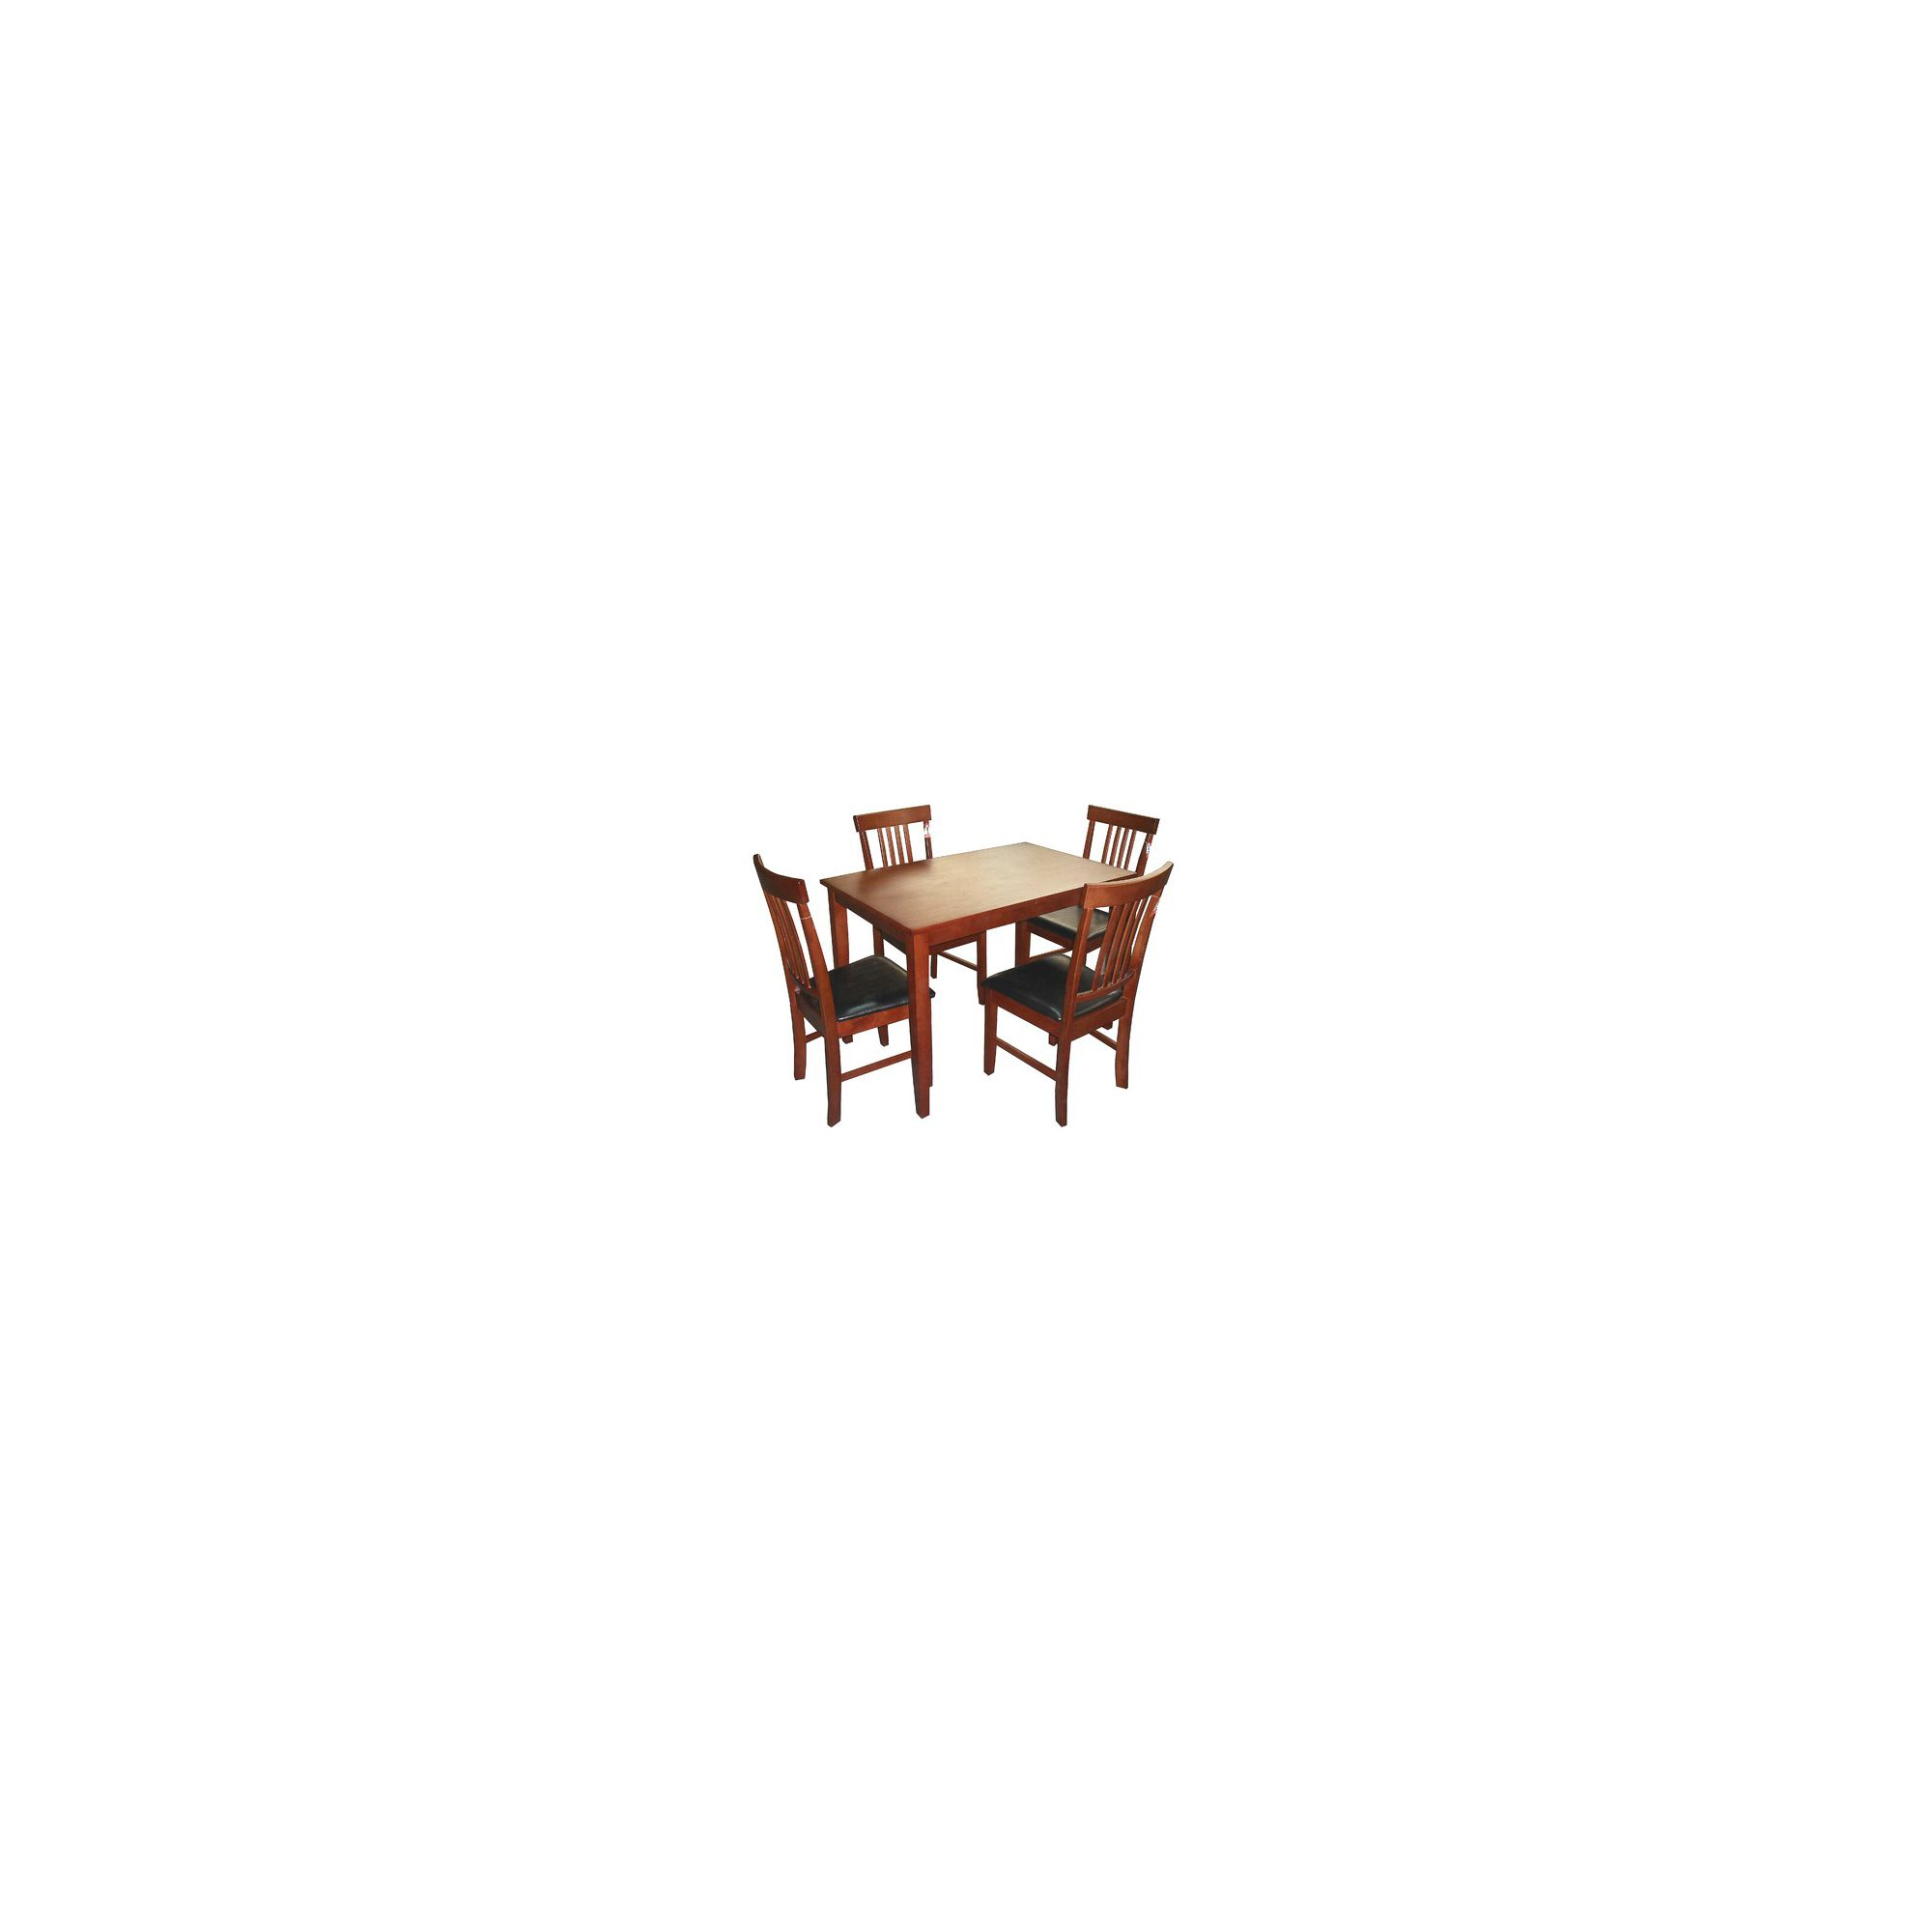 Heartlands Massa 4 Chair Dining Set - Small Table / 4 Chairs - Mahogany at Tesco Direct